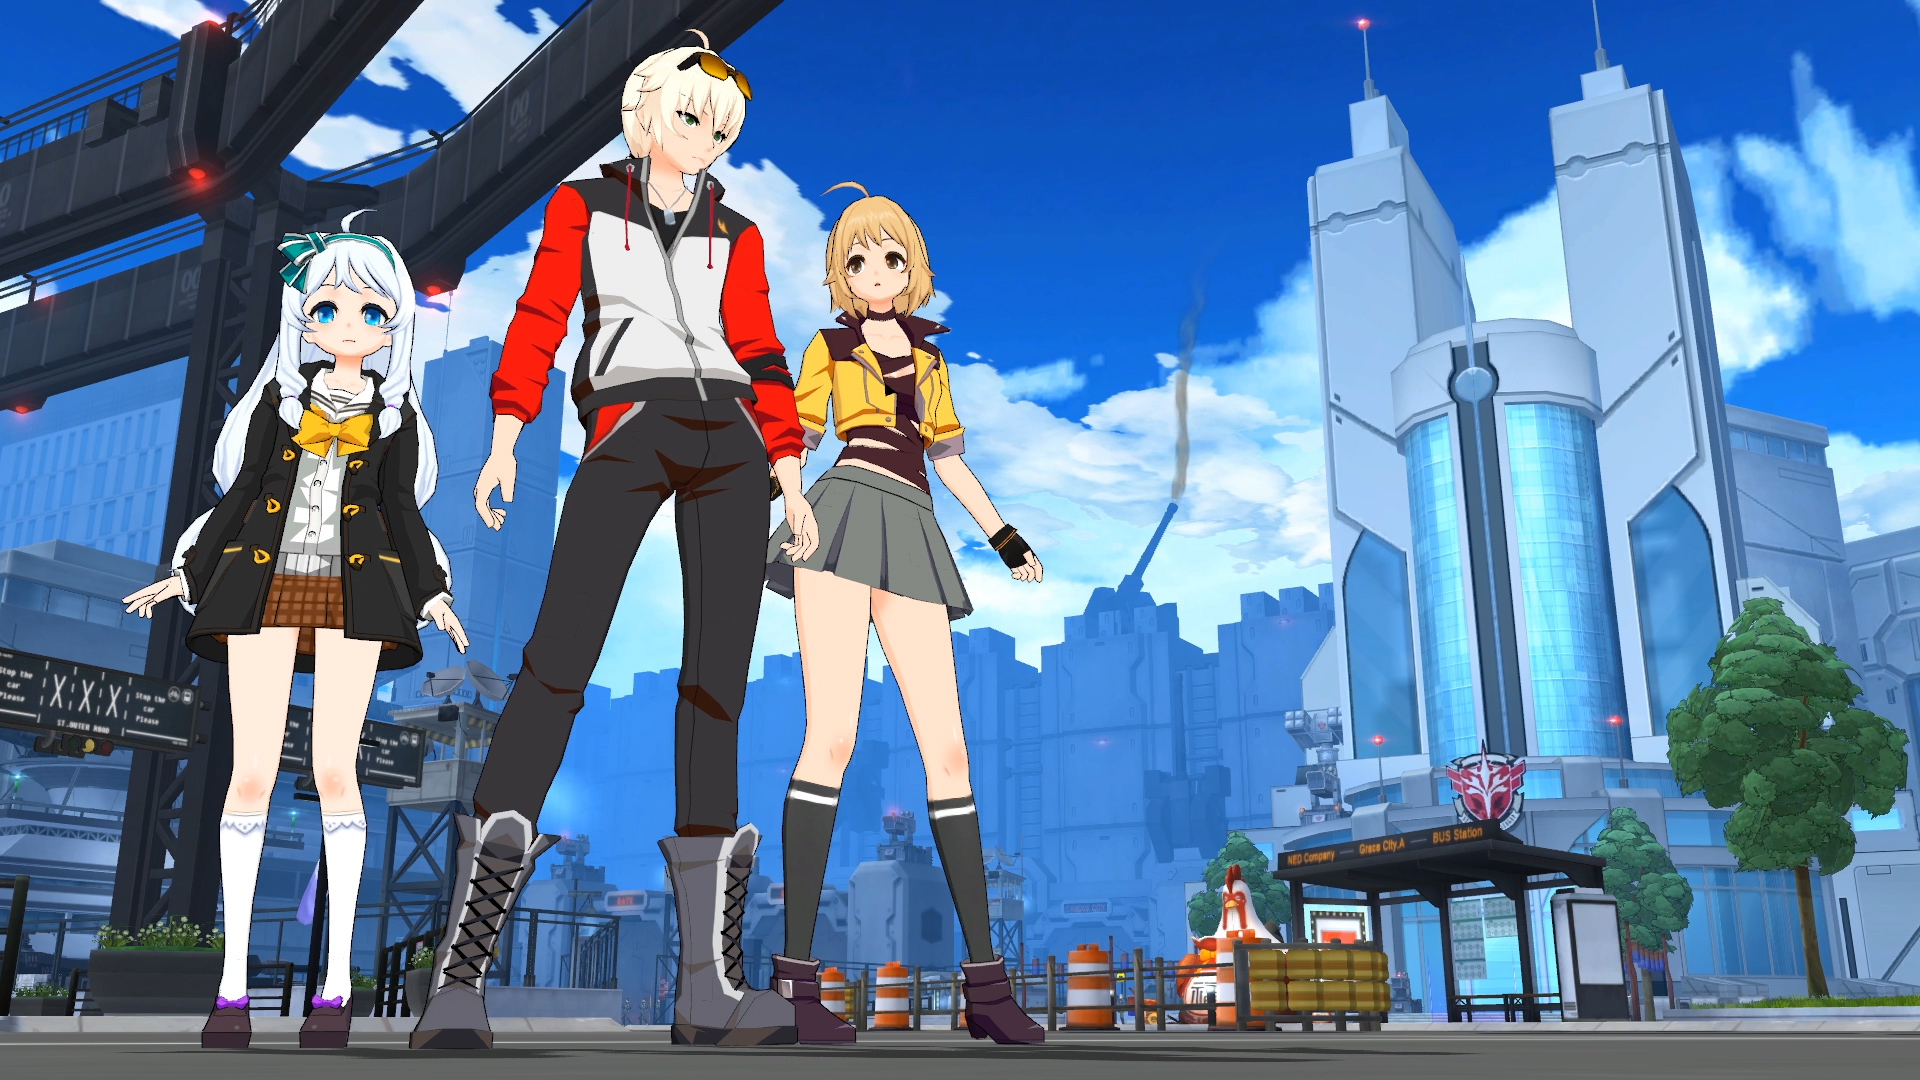 Soulworker Anime Action Mmo On Steam